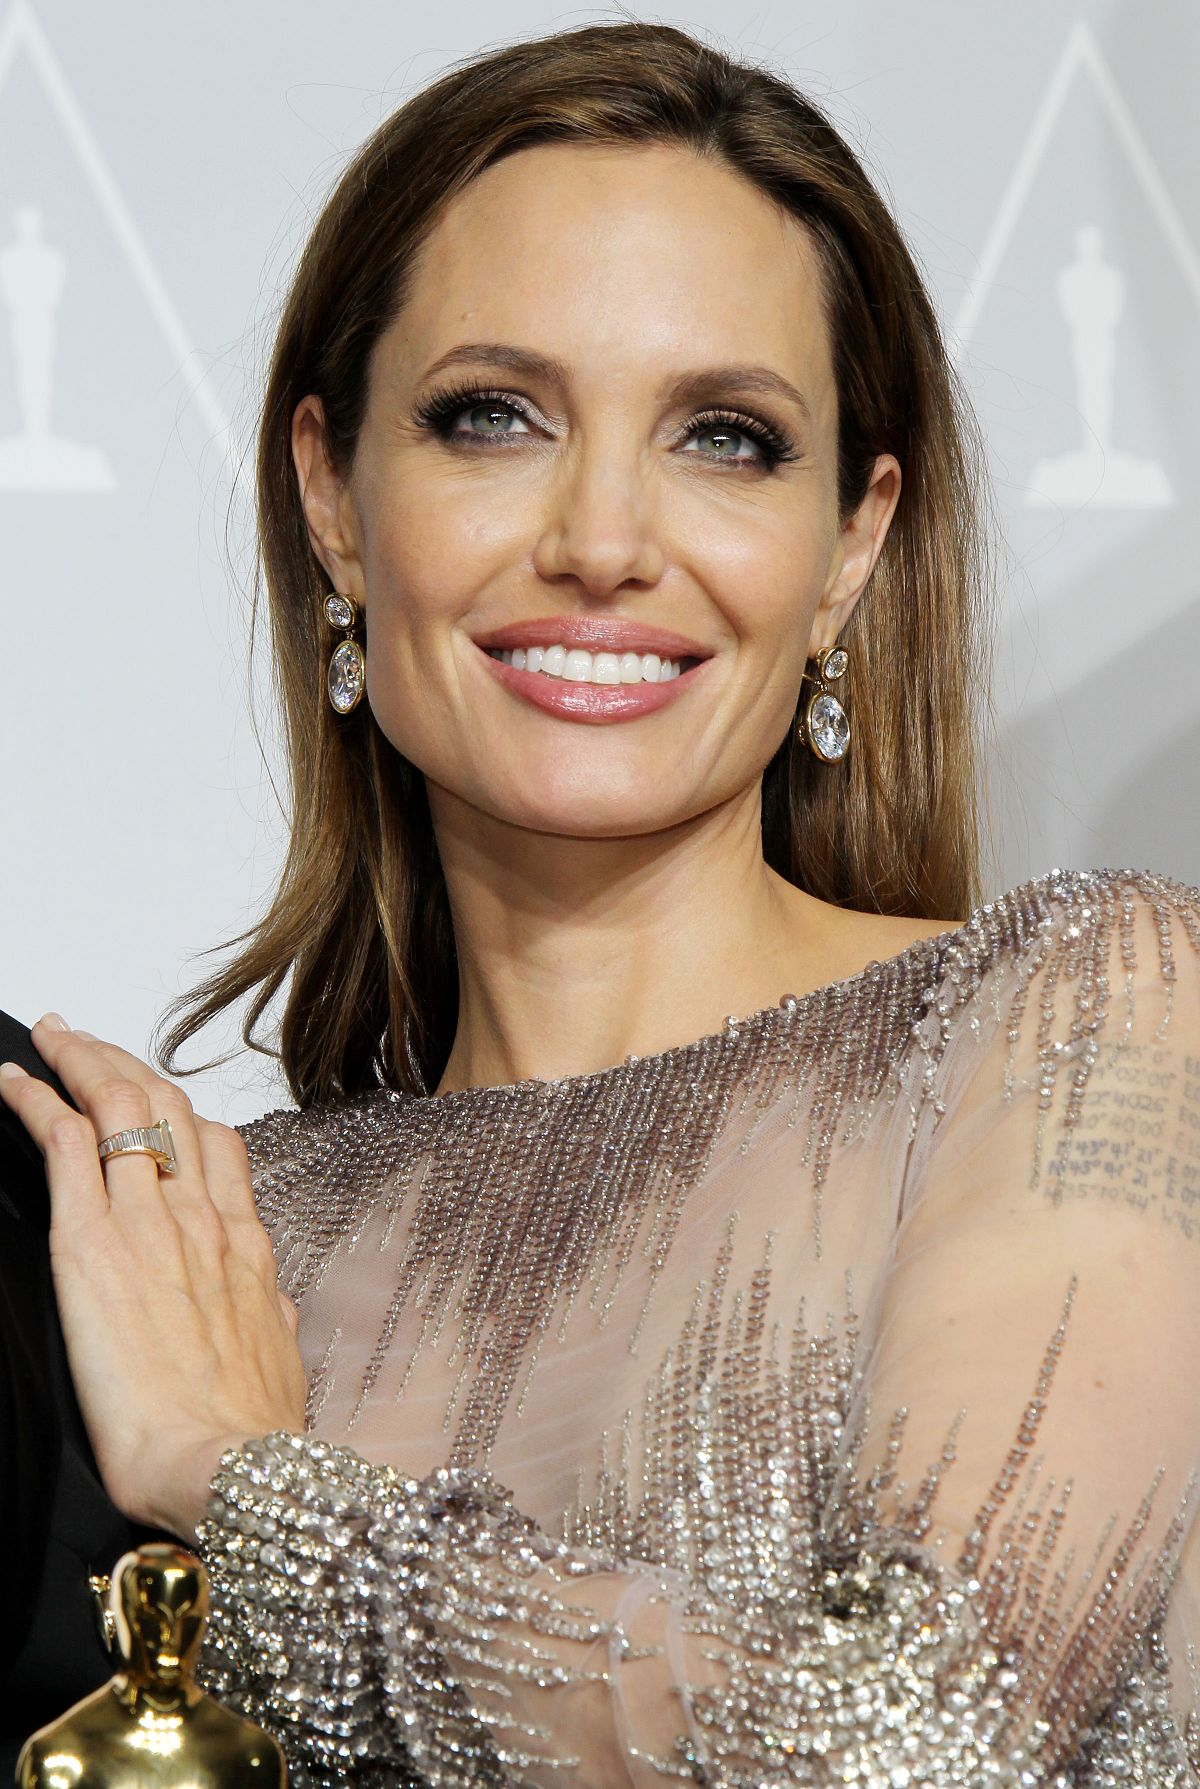 Angelina jolie new movies list 2012